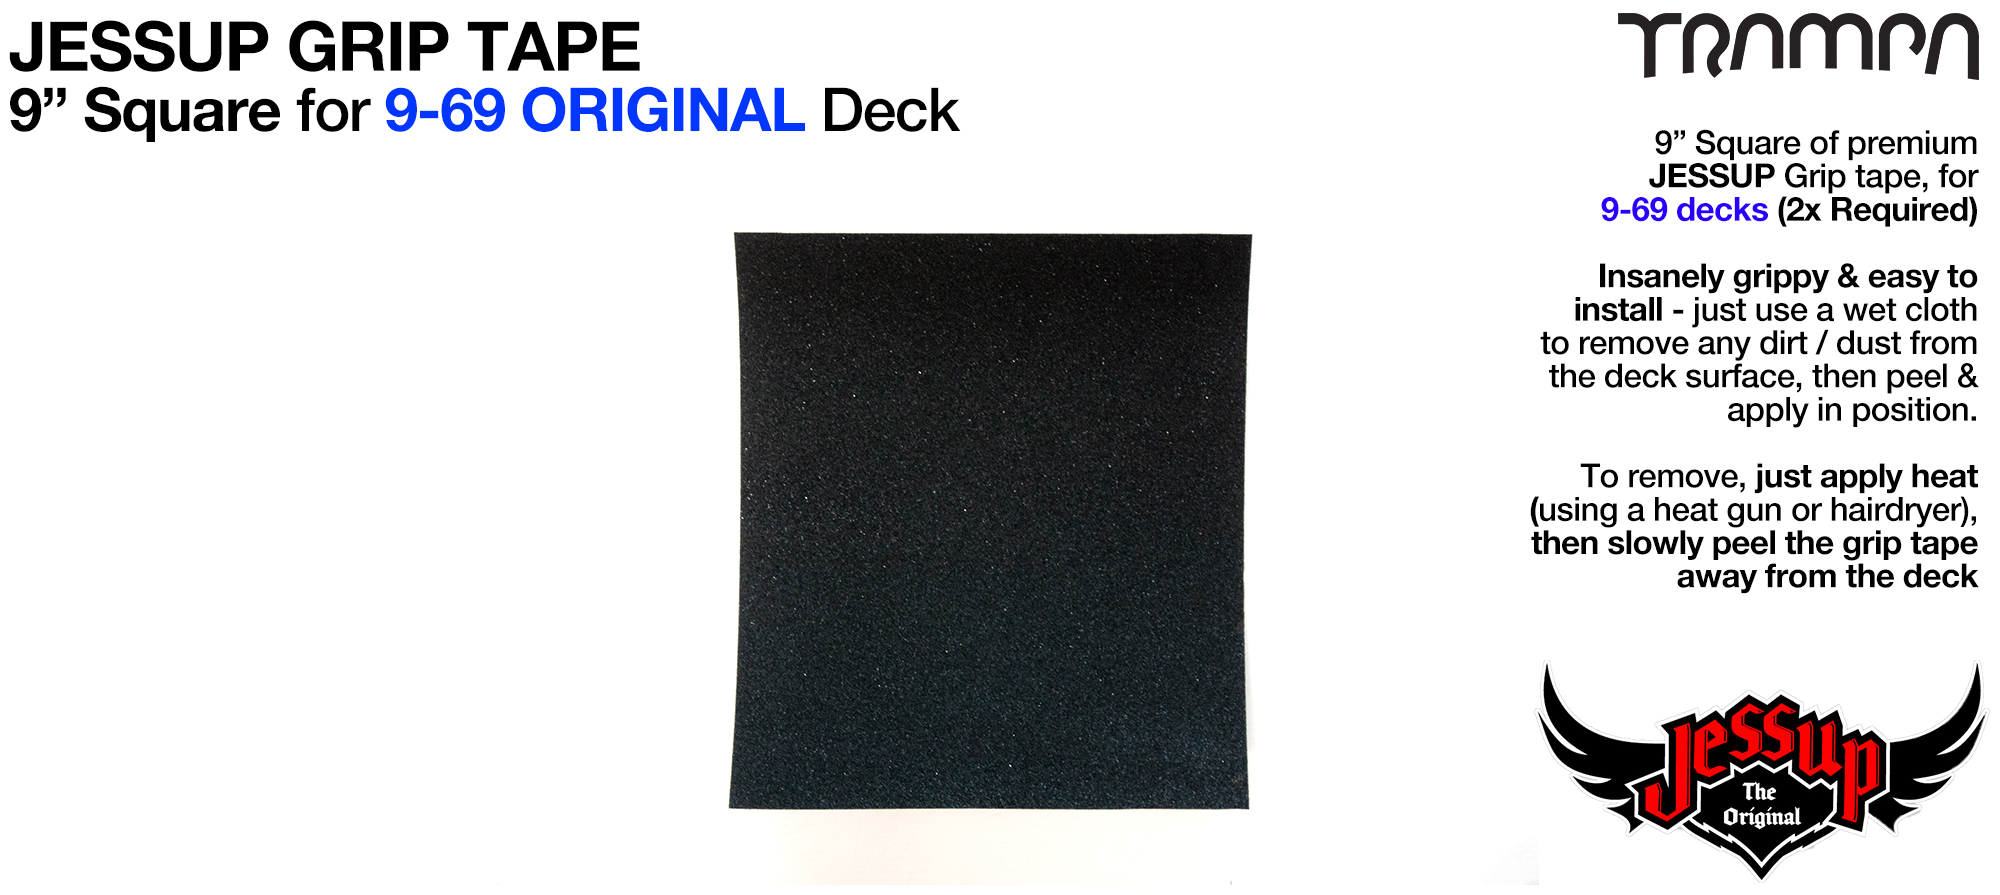 1x 9 Inch squares of Top Quality Jessup Grip tape